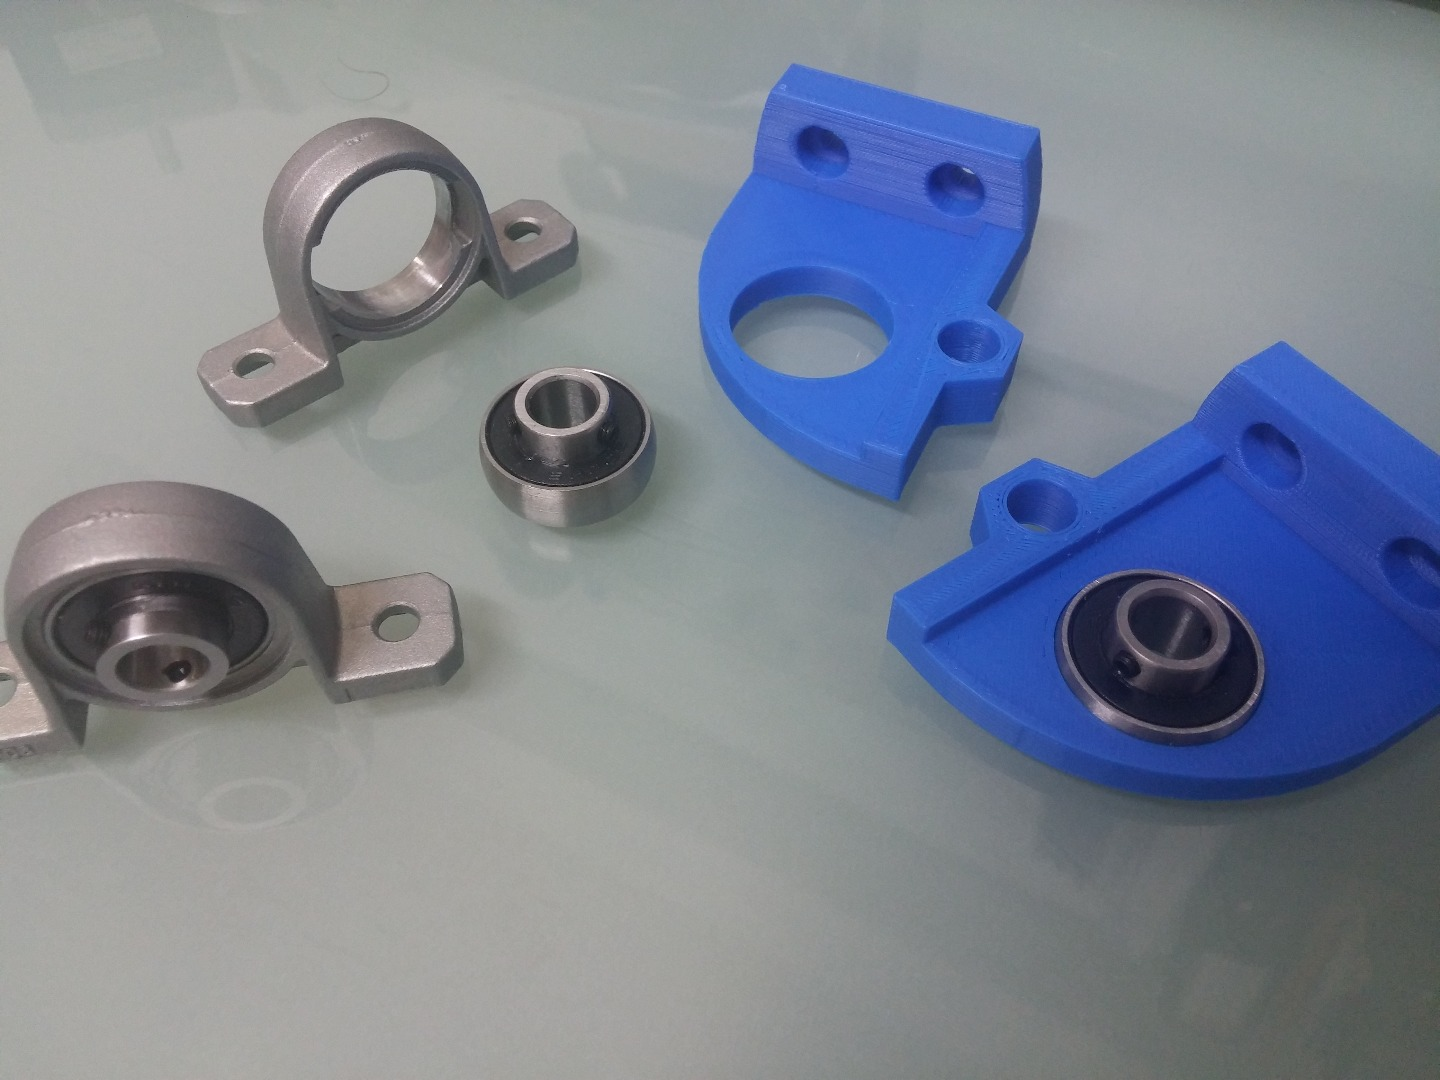 Picture of Top and Bottom Brackets